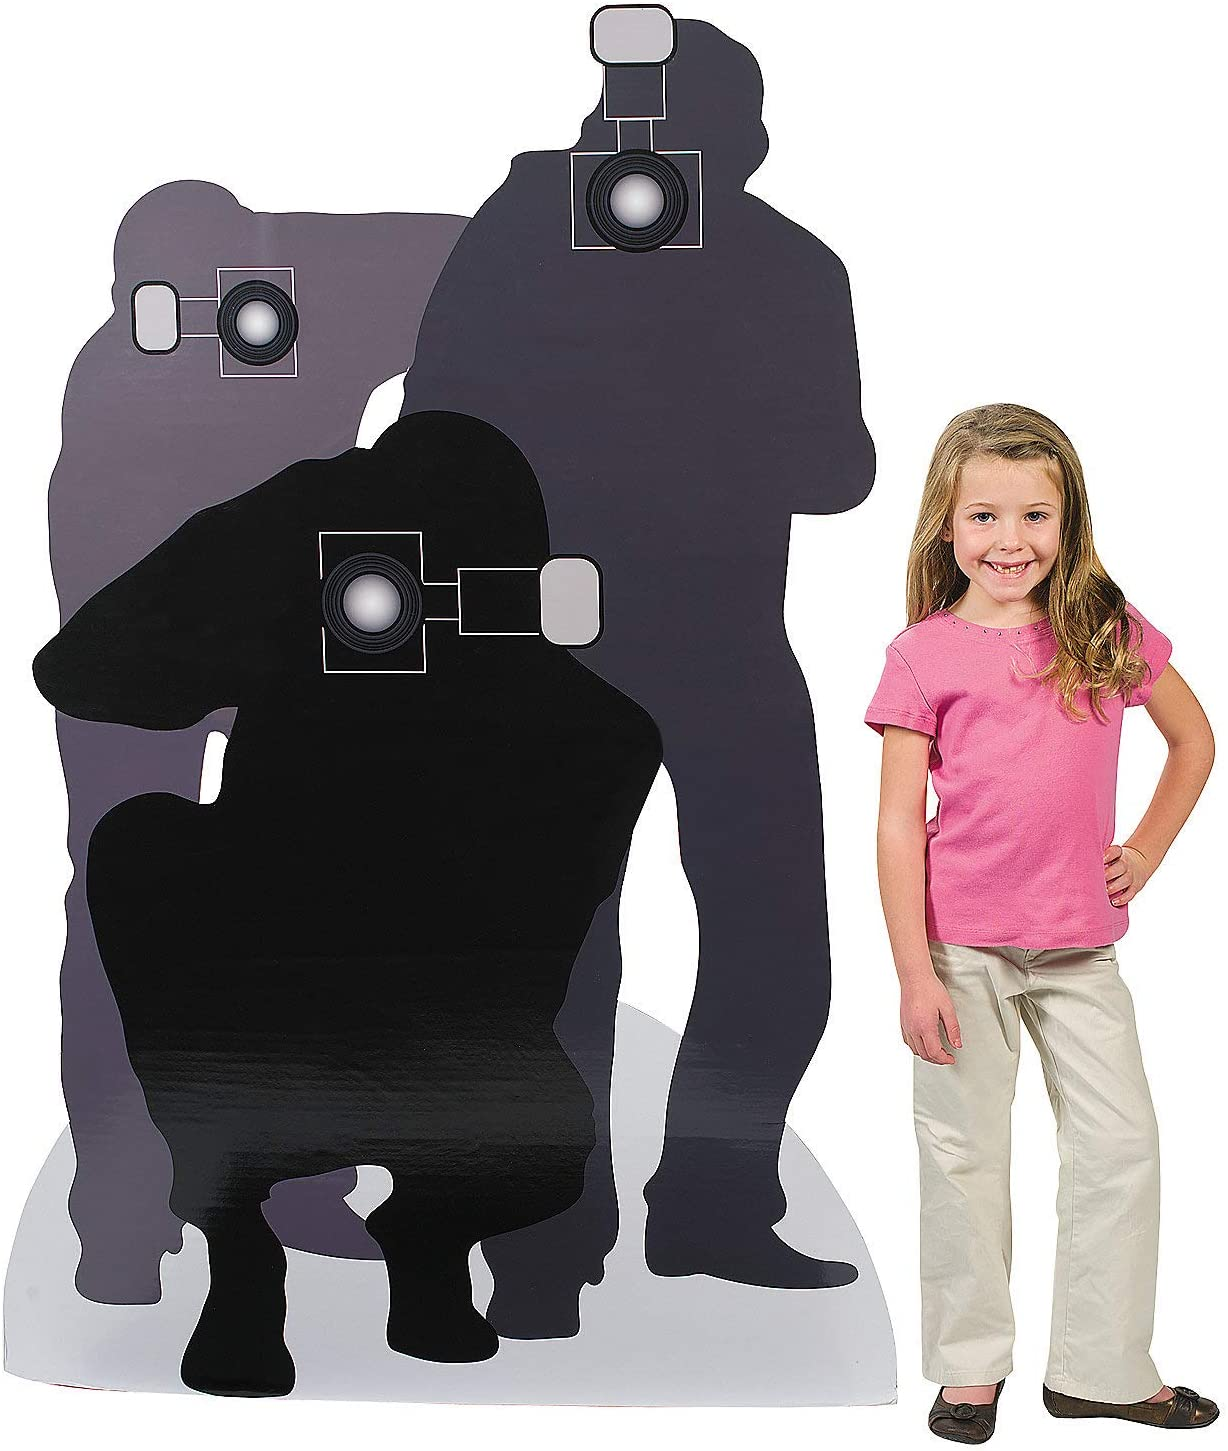 Super sale Oklahoma City Mall period limited Paparazzi Cardboard Stand up Decor Party for fun